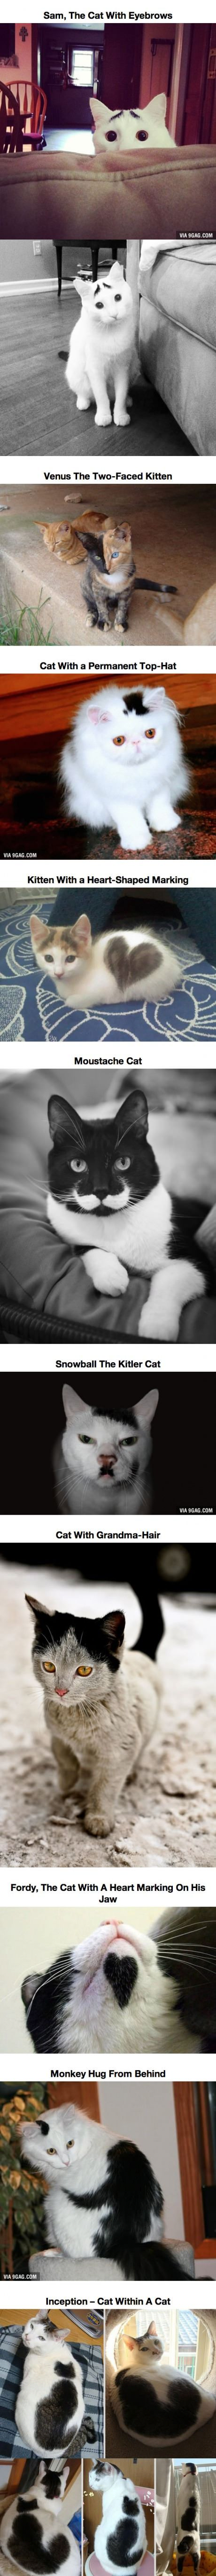 Nobody can call my cat hitler anymore, not compared to this one. jupiii